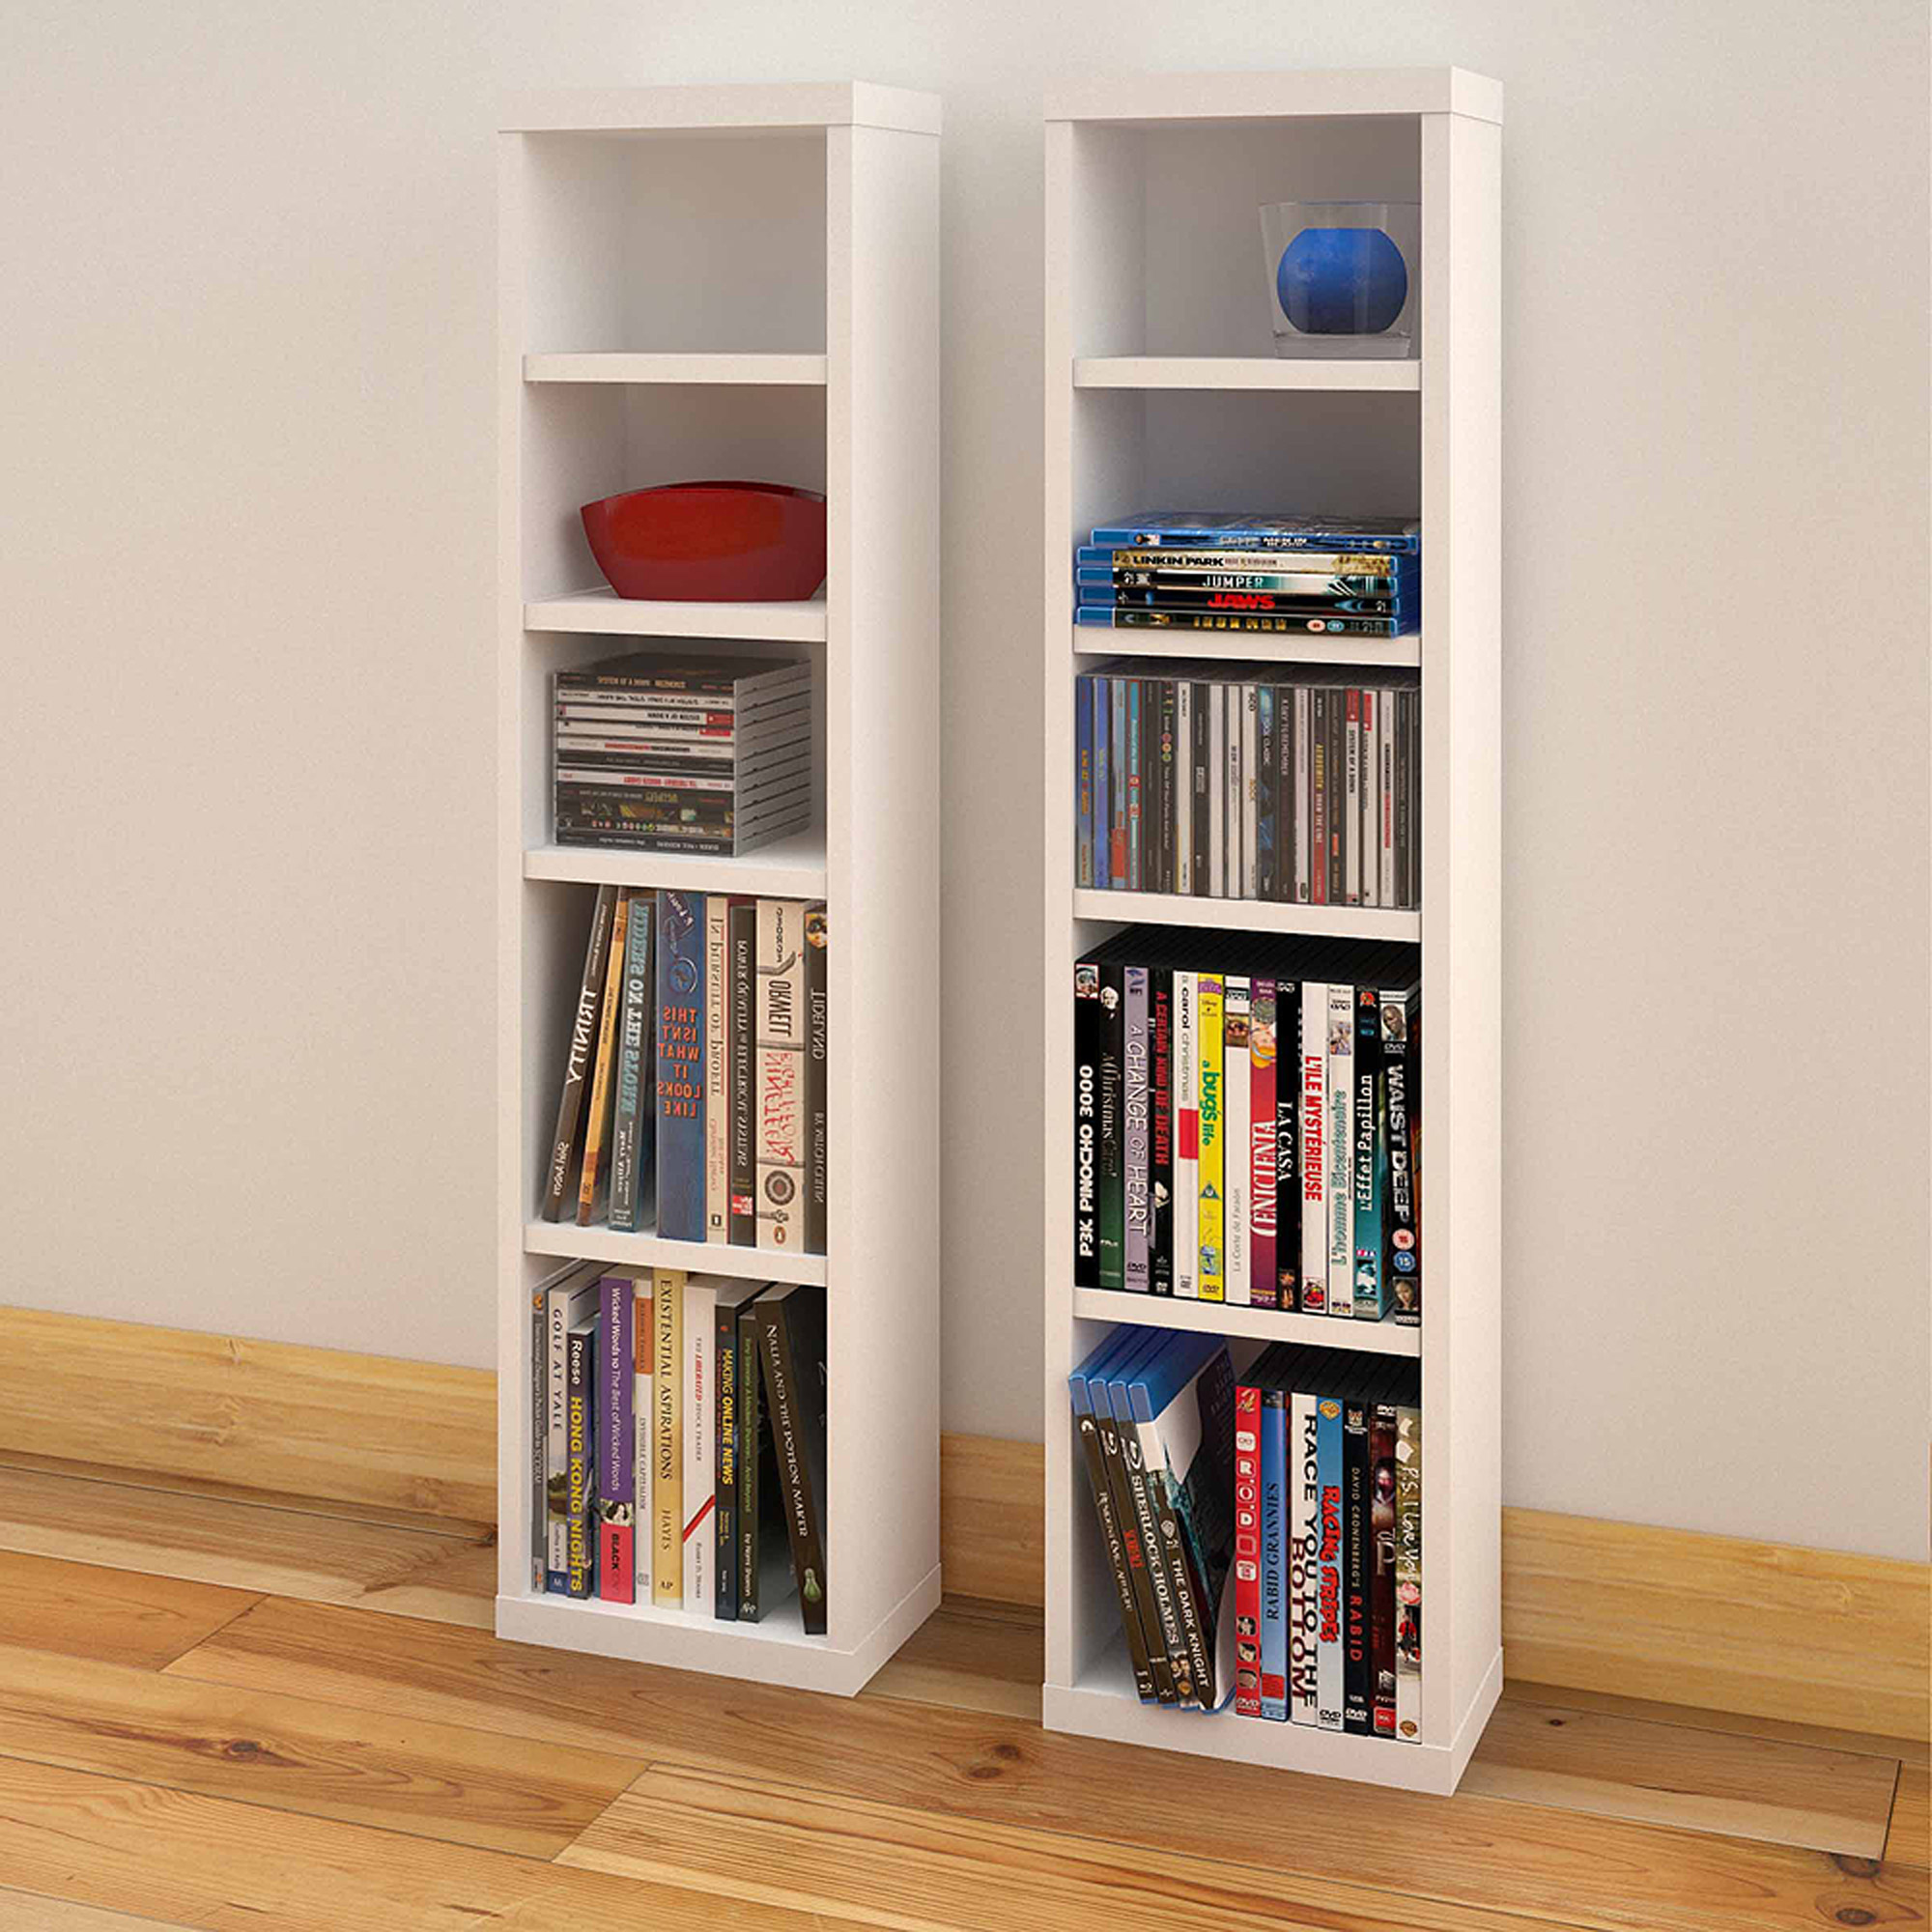 Liber T 4 Shelf Modular CD / DVD Storage Towers, Set Of 2